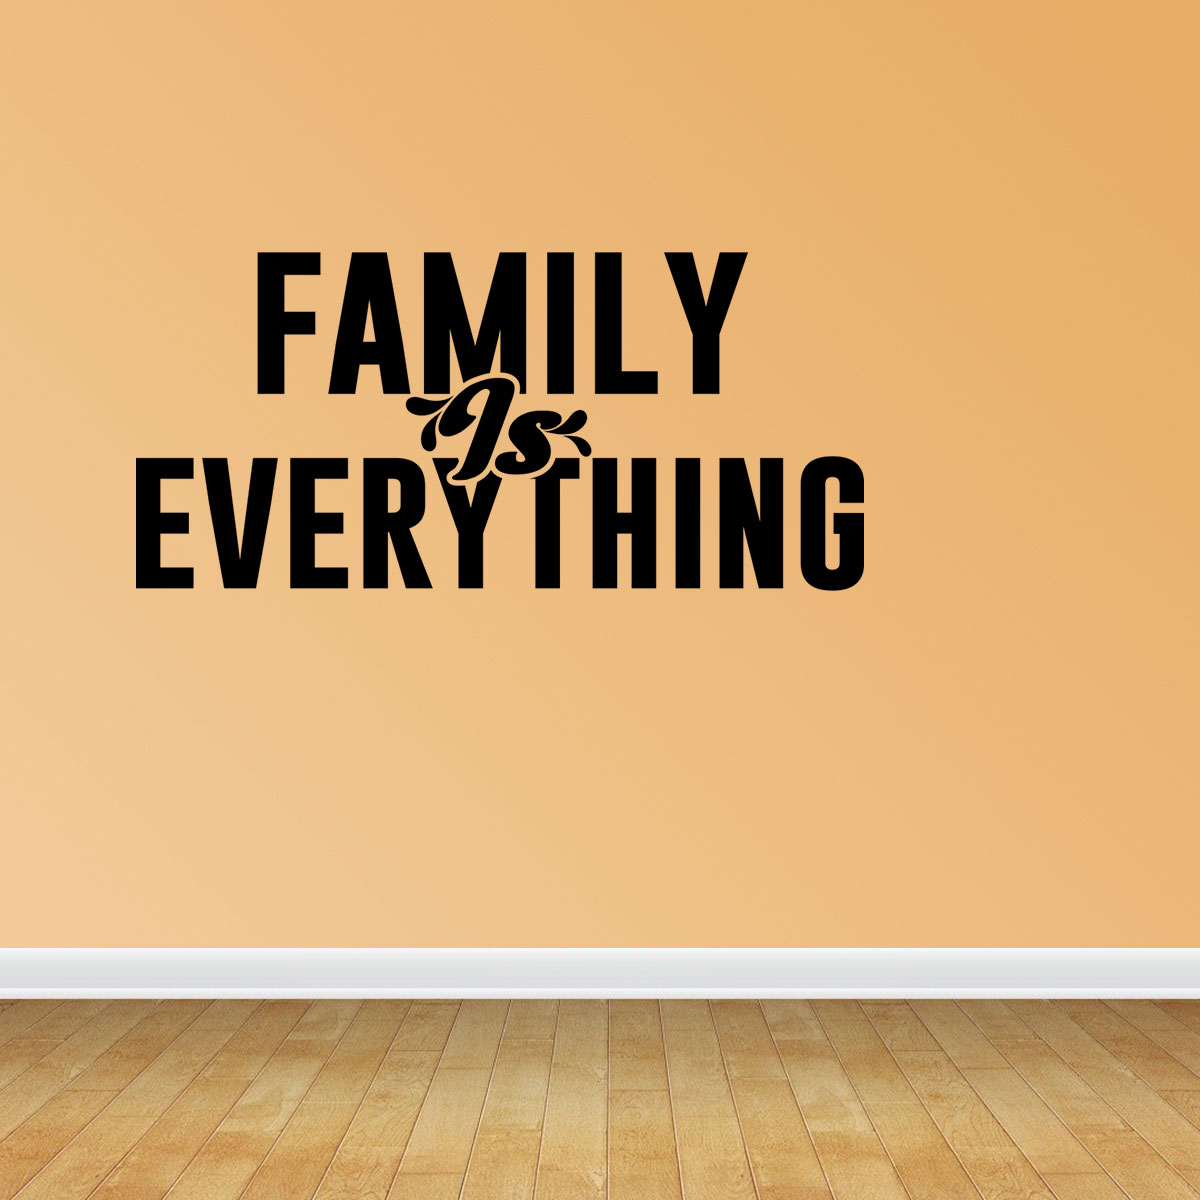 Family Is Everything Decal Home Decor Family Vinyl Quotes Wall Art